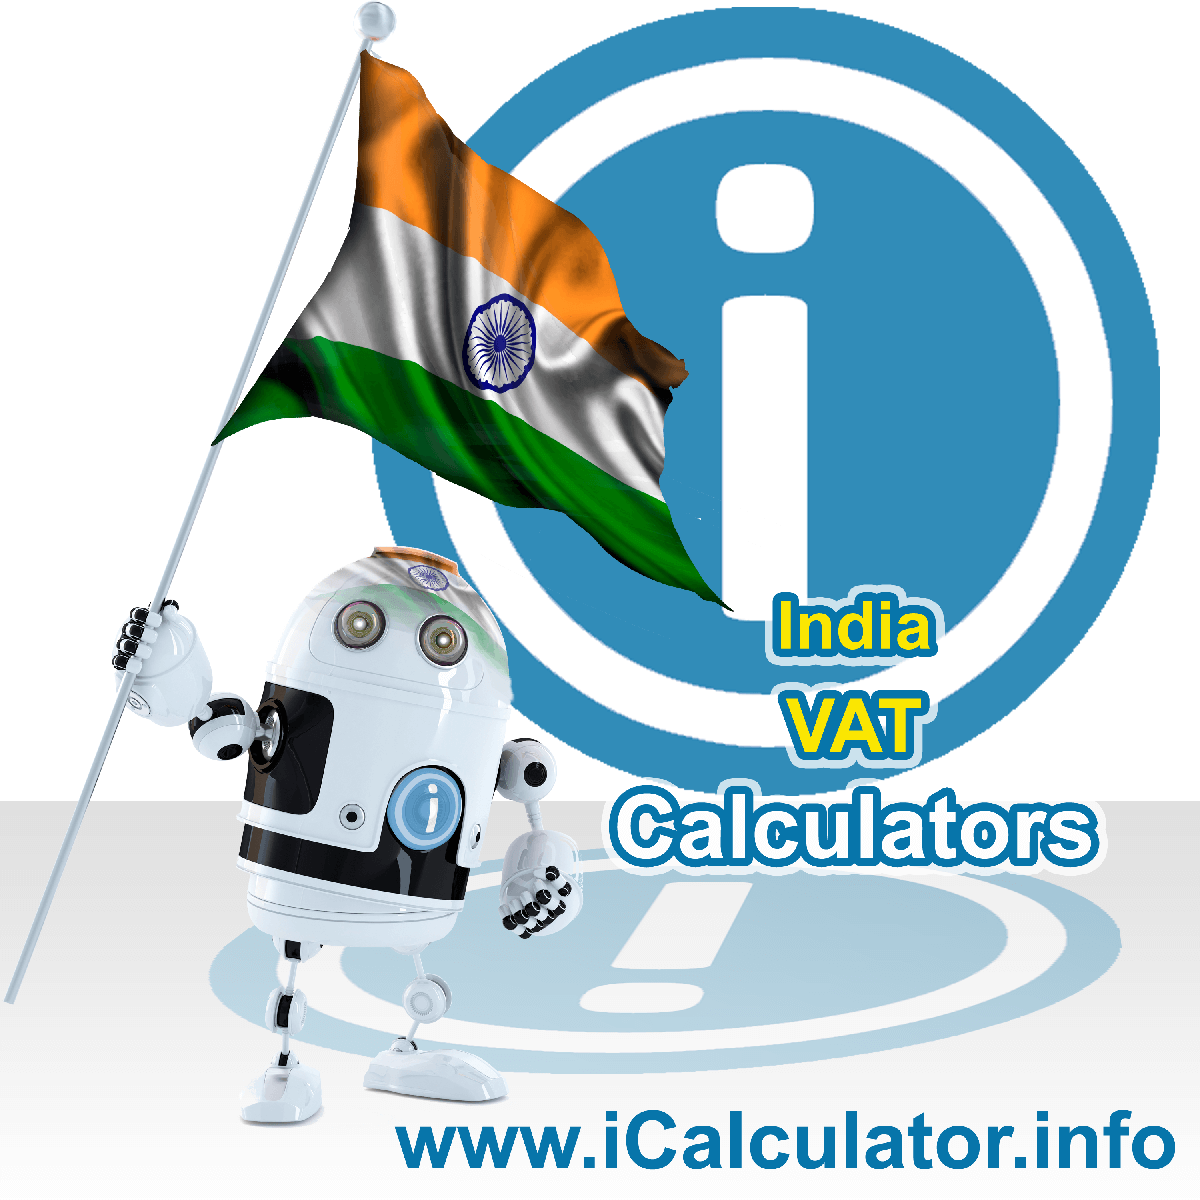 India VAT Calculator. This image shows the India flag and information relating to the VAT formula used for calculating Value Added Tax in India using the India VAT Calculator in 2020